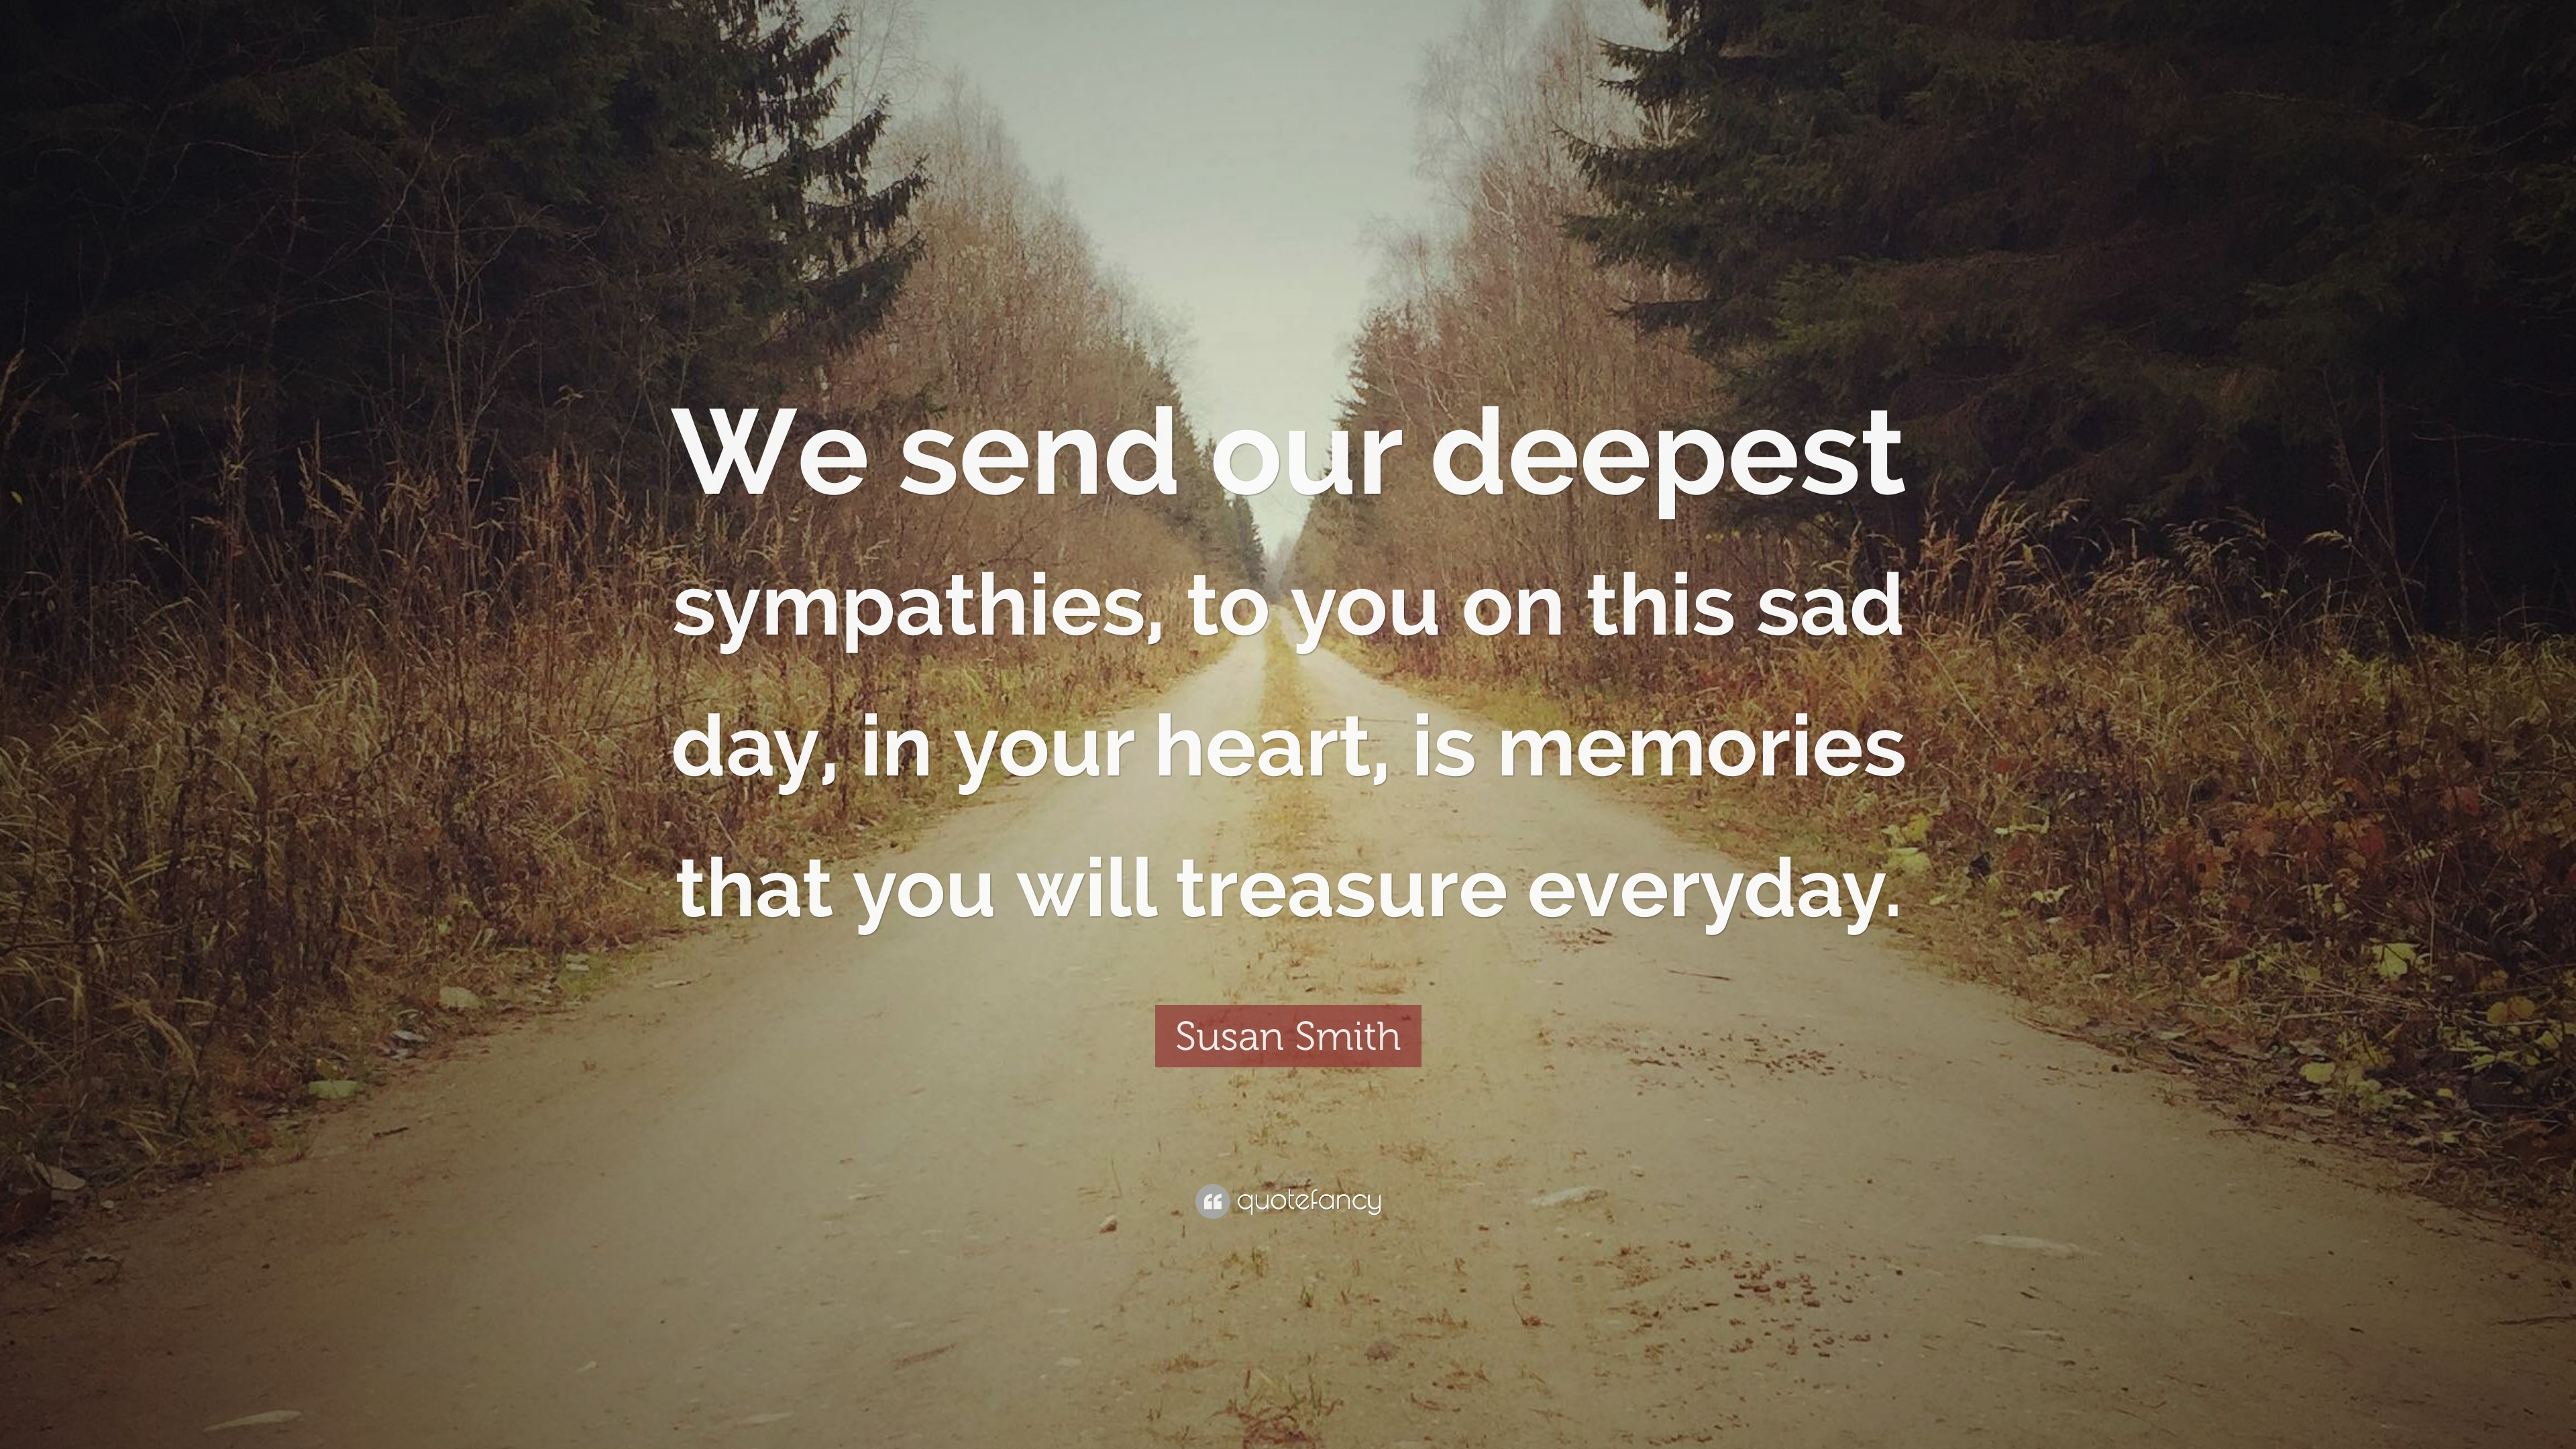 susan smith quote we send our deepest sympathies to you on this